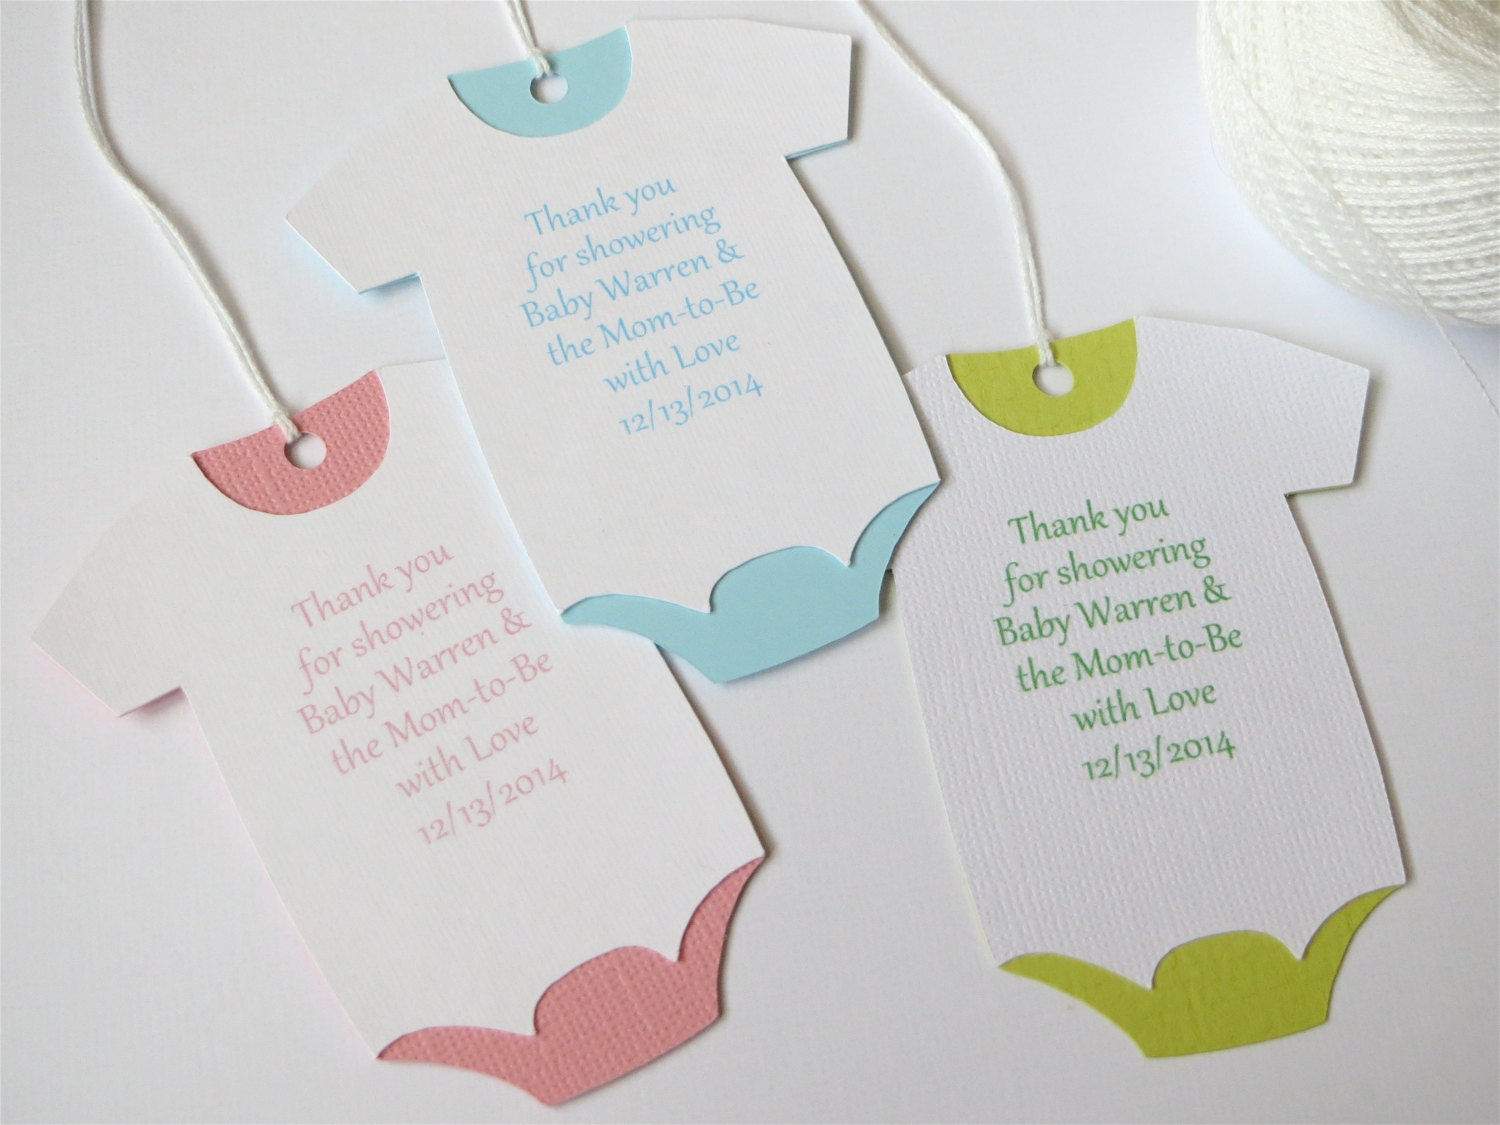 Adaptable image intended for free printable baby shower favor tags